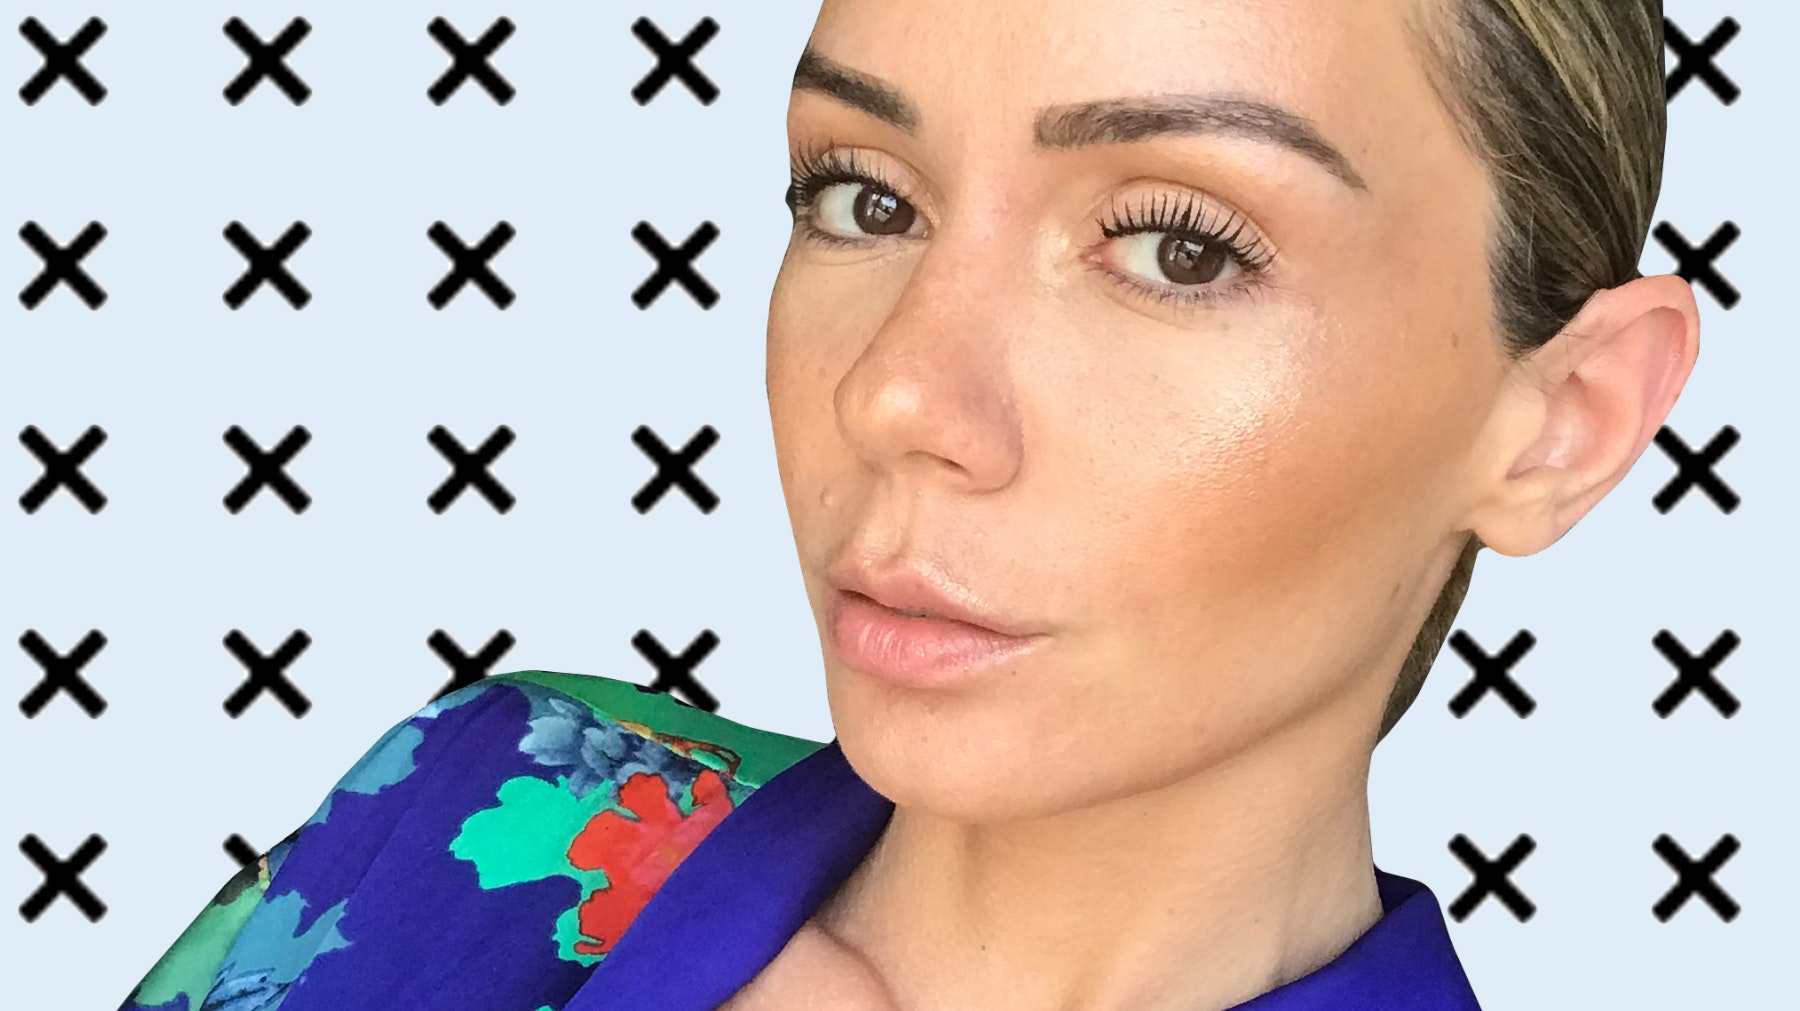 Her Top 11: Elcie Cosmetics Founder and Instagram Star, Lilit Caradanian